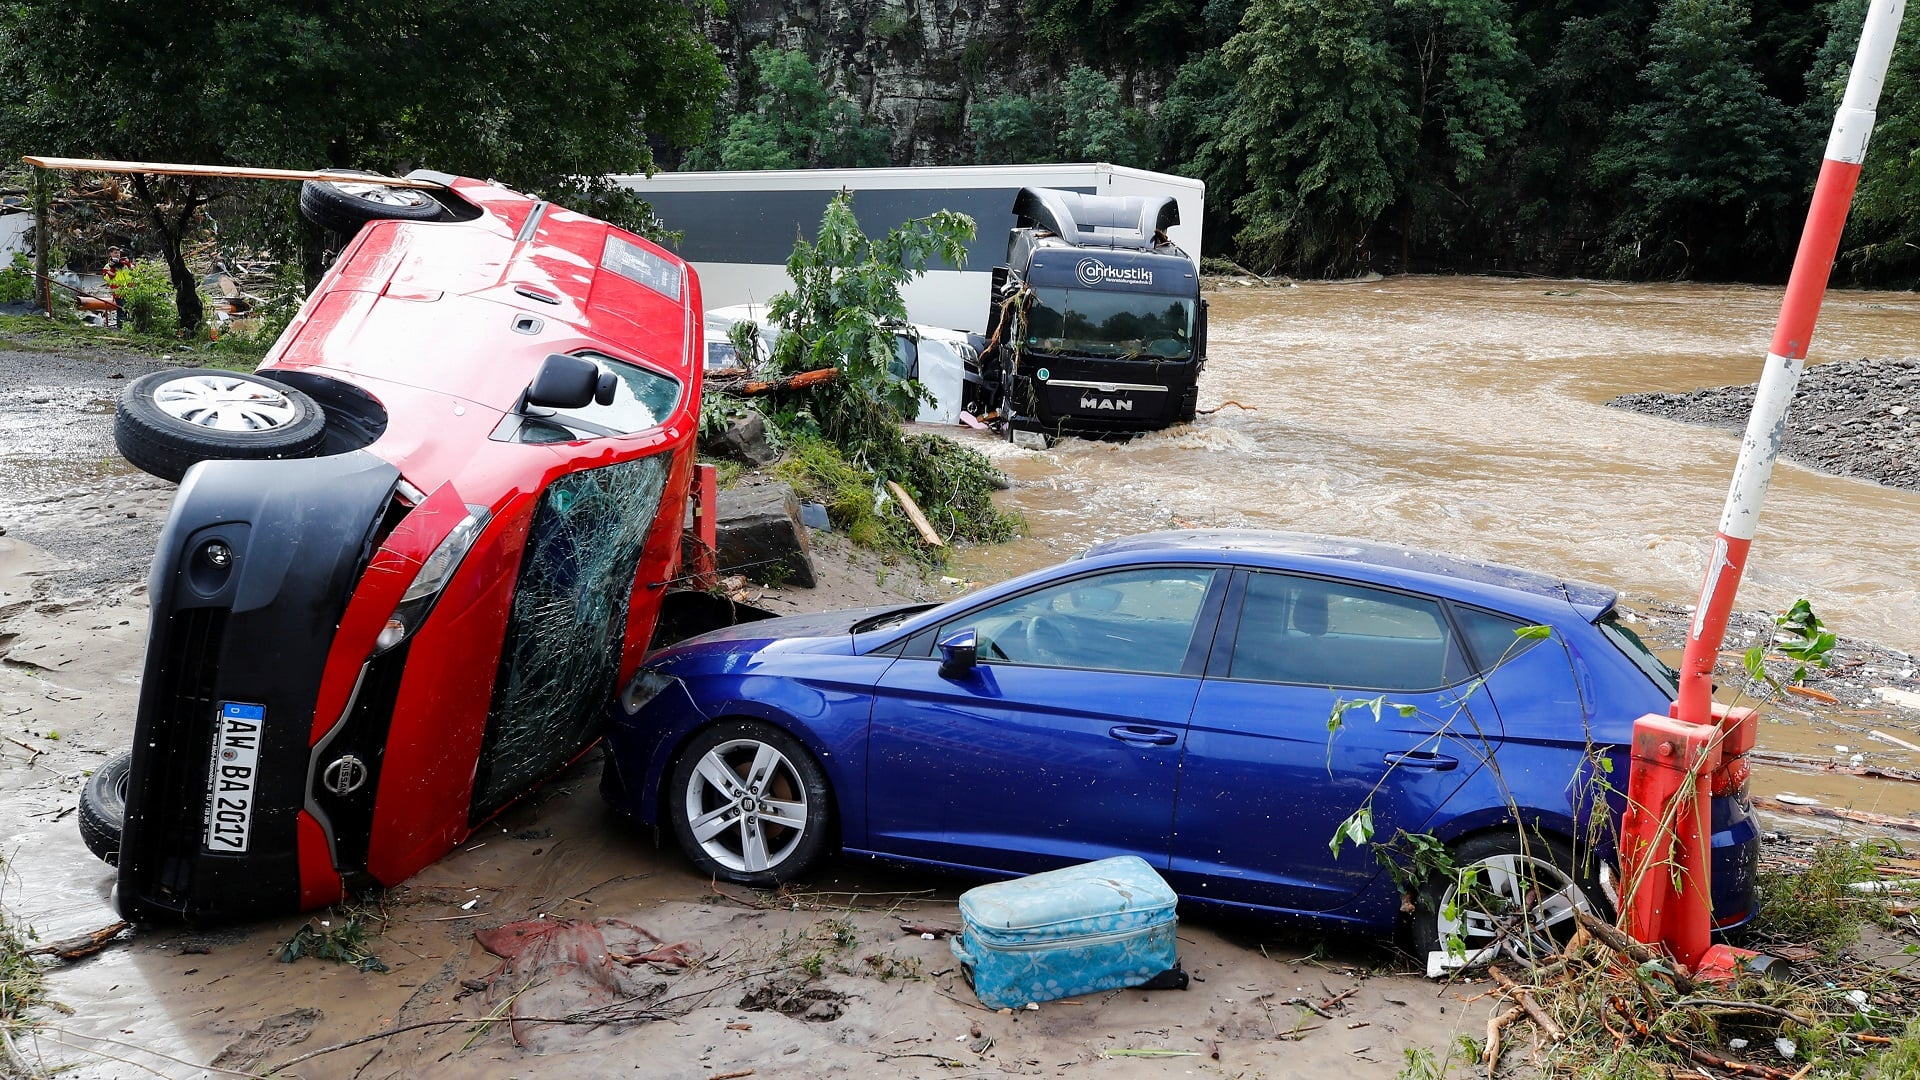 Rain, floods cause chaos in parts of Germany, Belgium